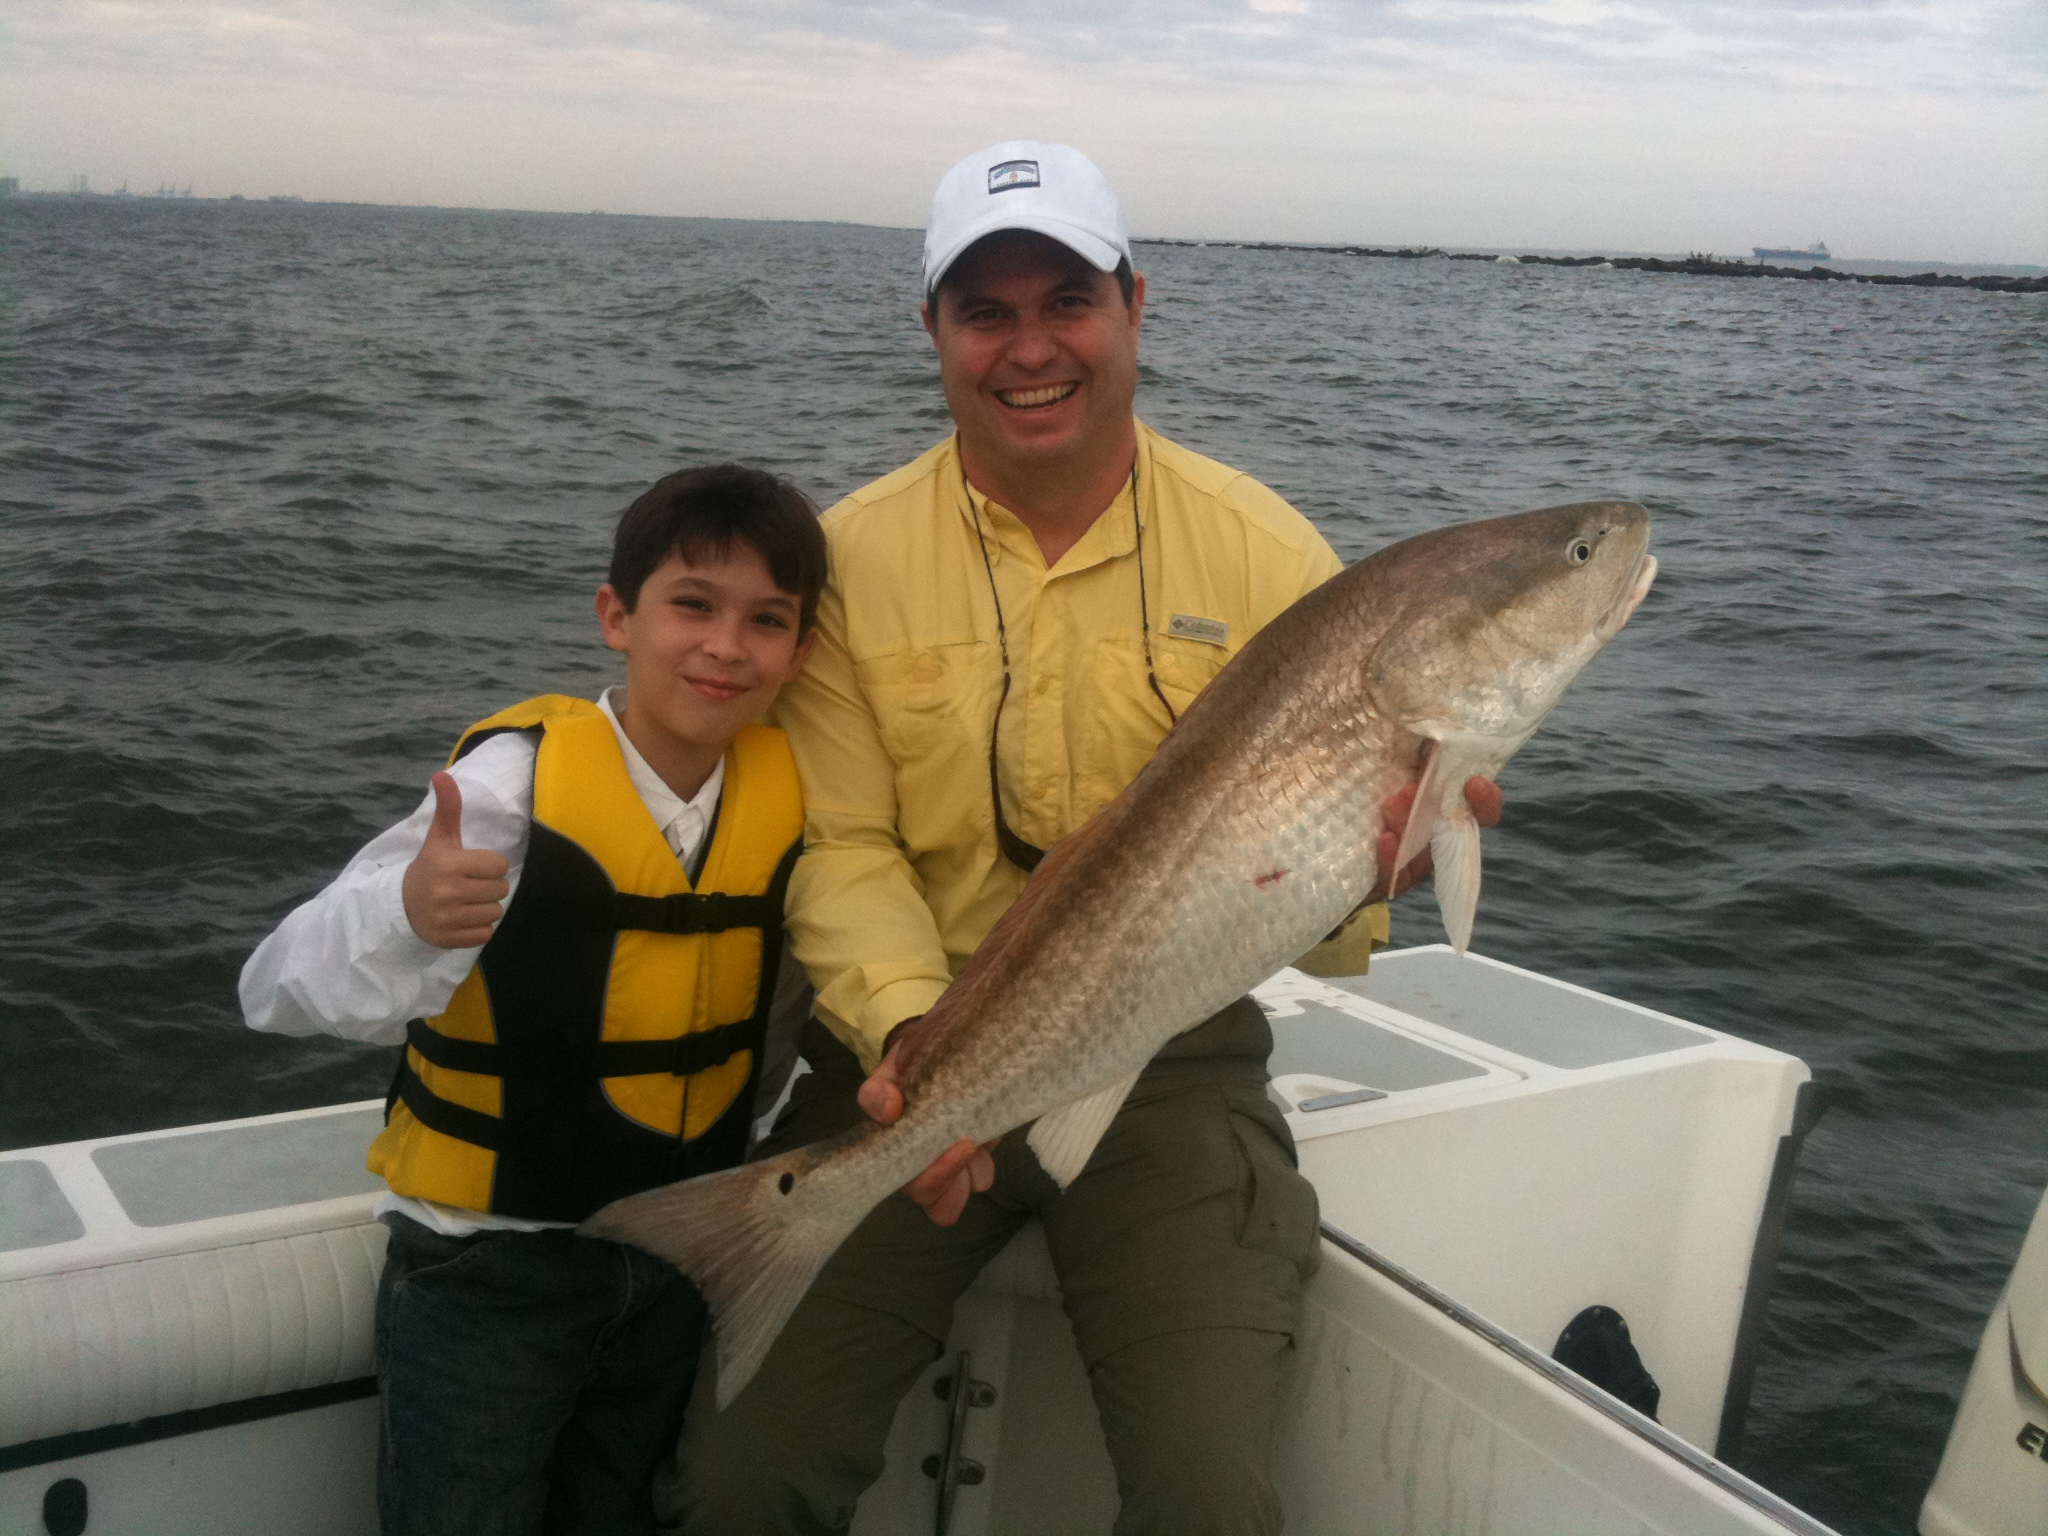 The god of surprises image i nations for Father son fishing